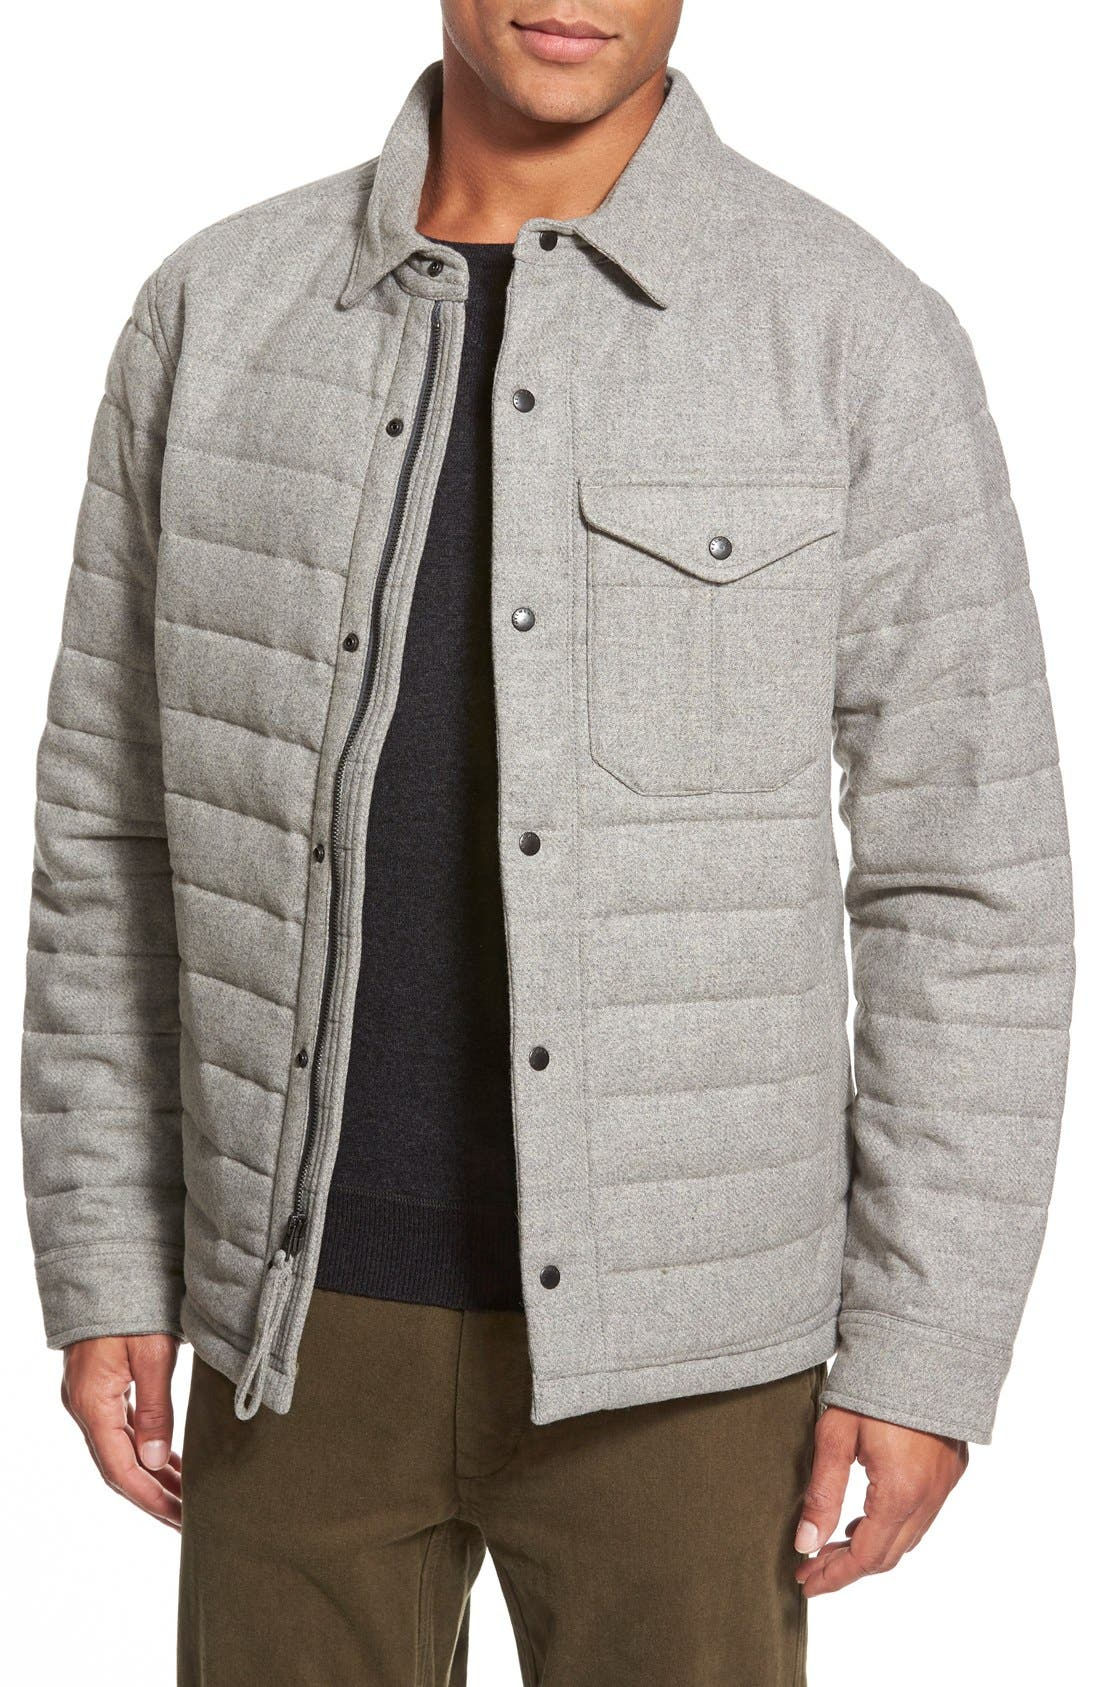 Quilted Field Jacket,                             Main thumbnail 1, color,                             050